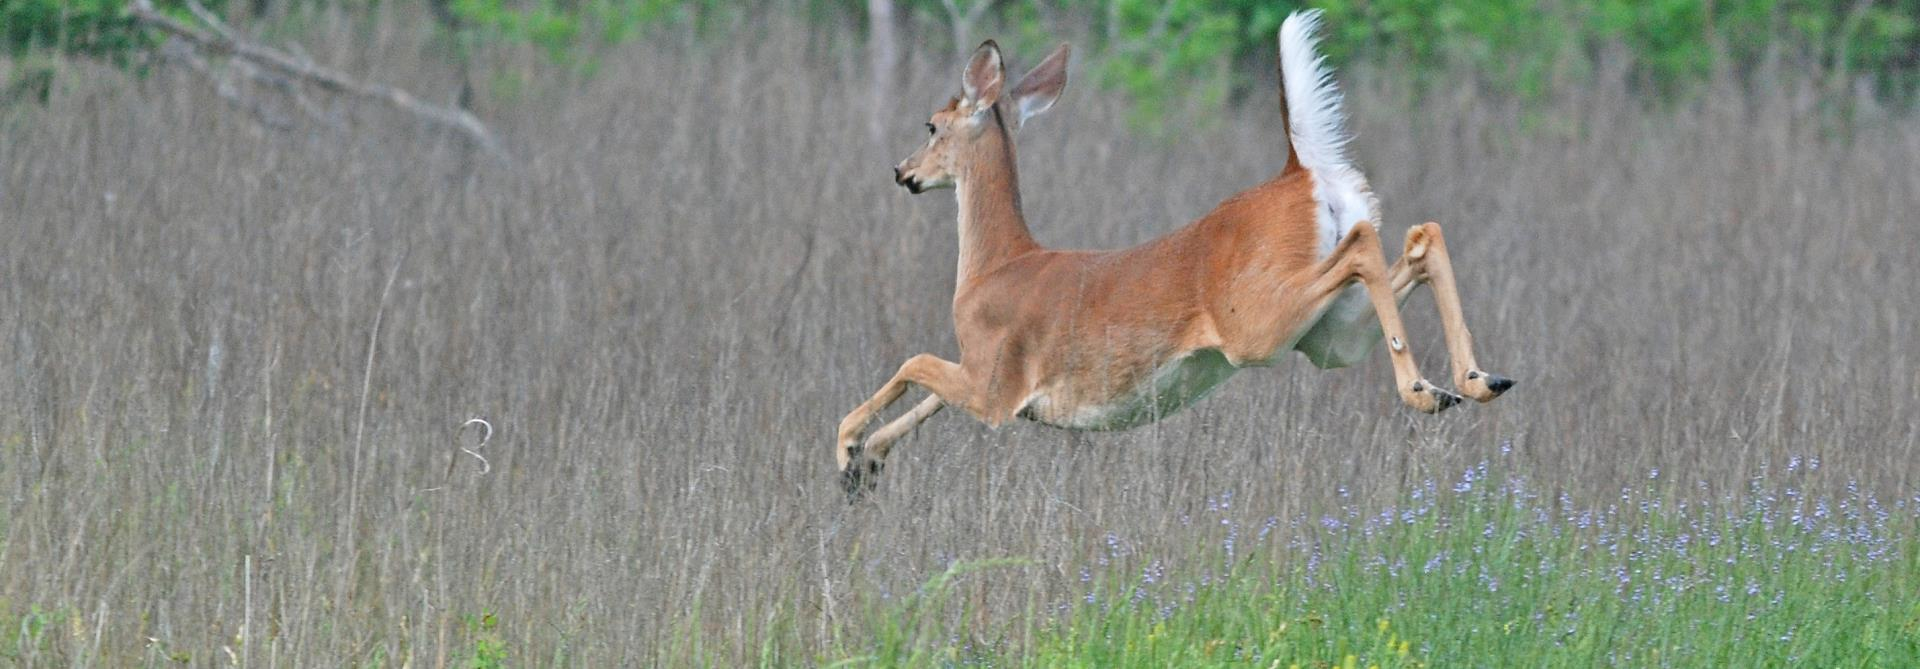 deer leaping